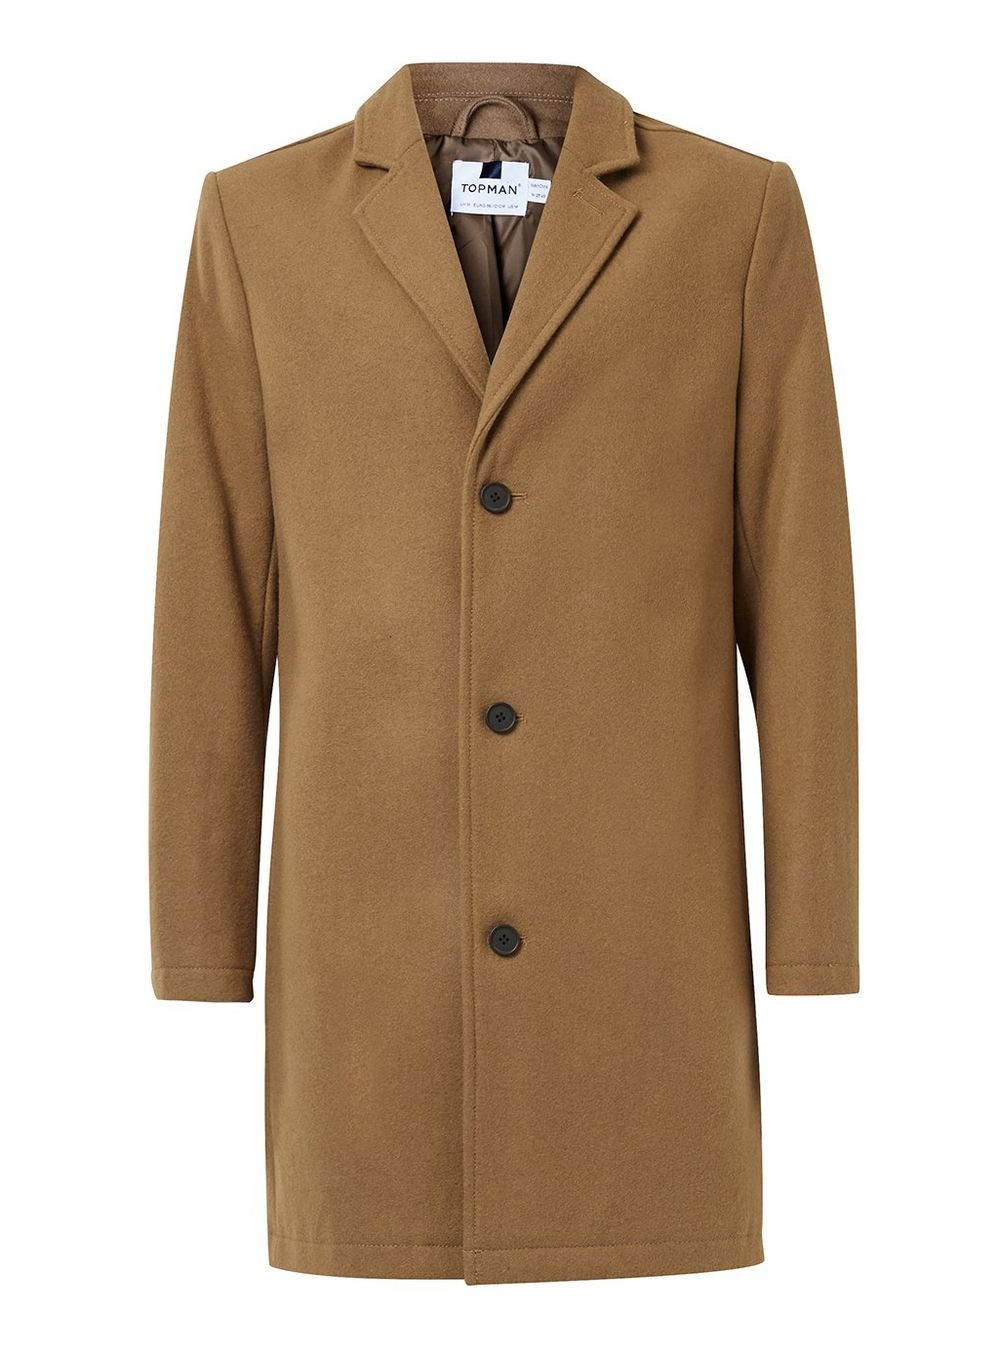 Wool for Sale Lovely Camel Wool Rich Overcoat topman Of Amazing 50 Models Wool for Sale